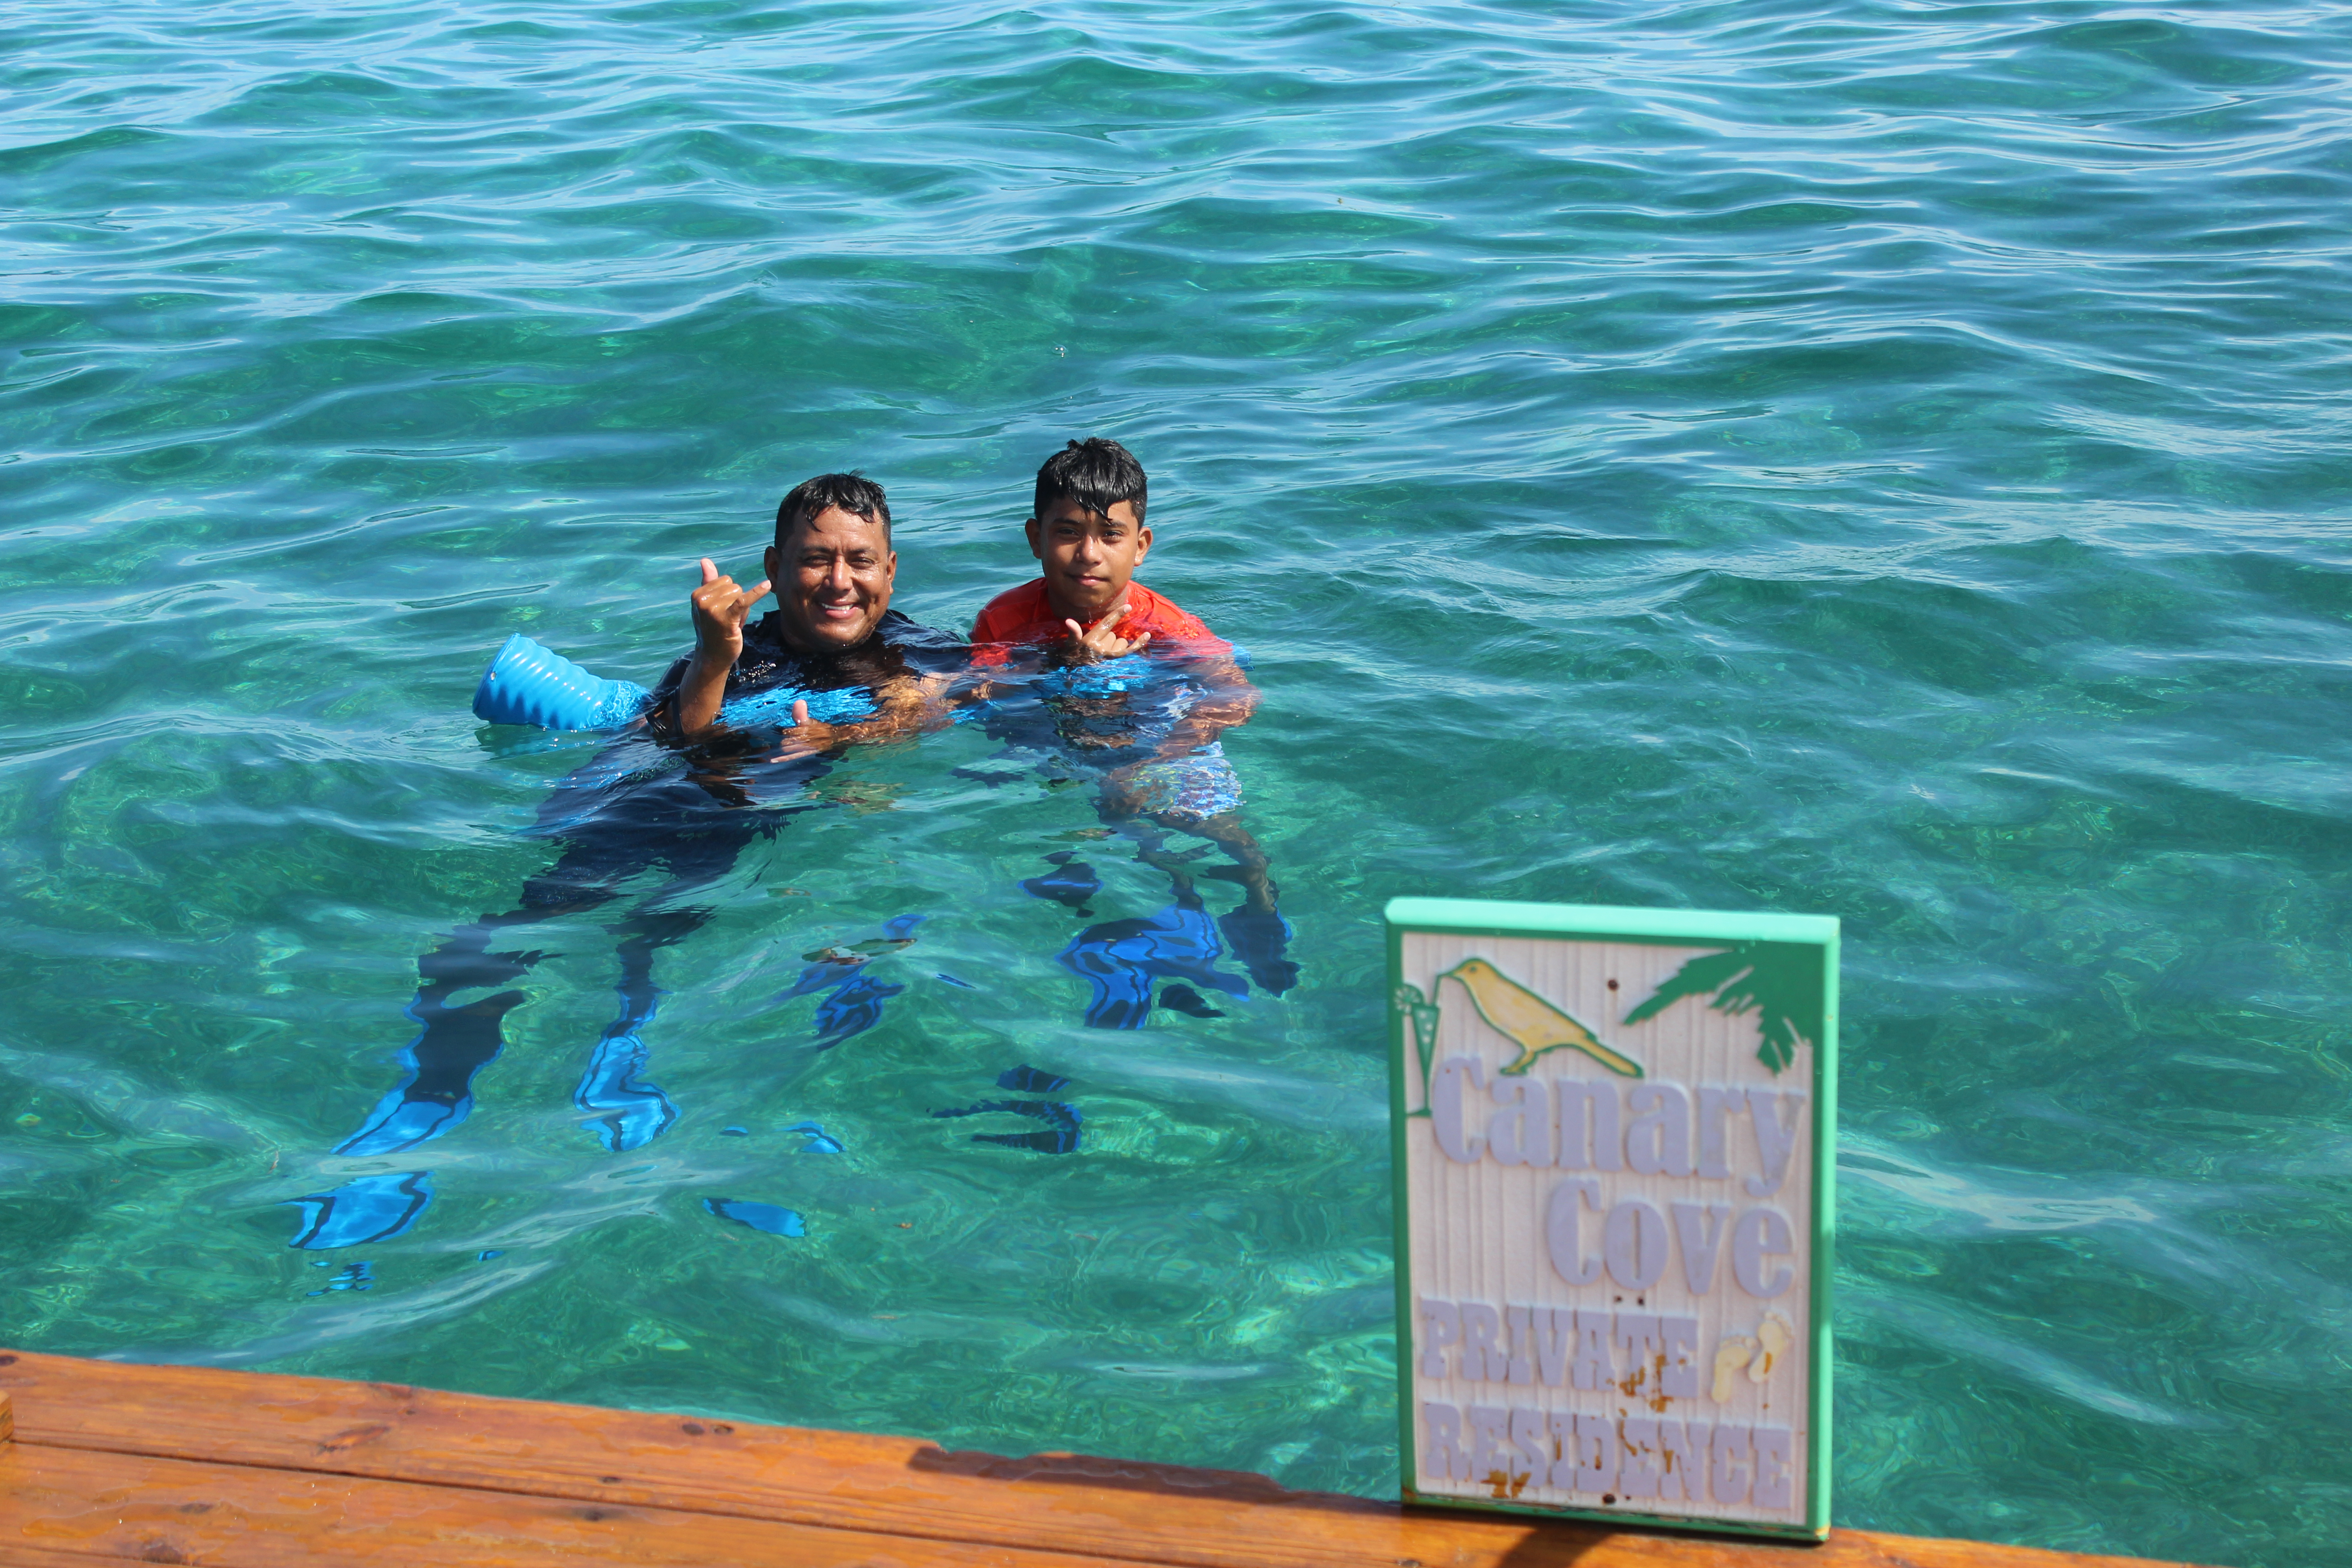 Canary Cove Divemaster Palma Guides Snorkelers at Mexico Rocks from Private Swim Platform